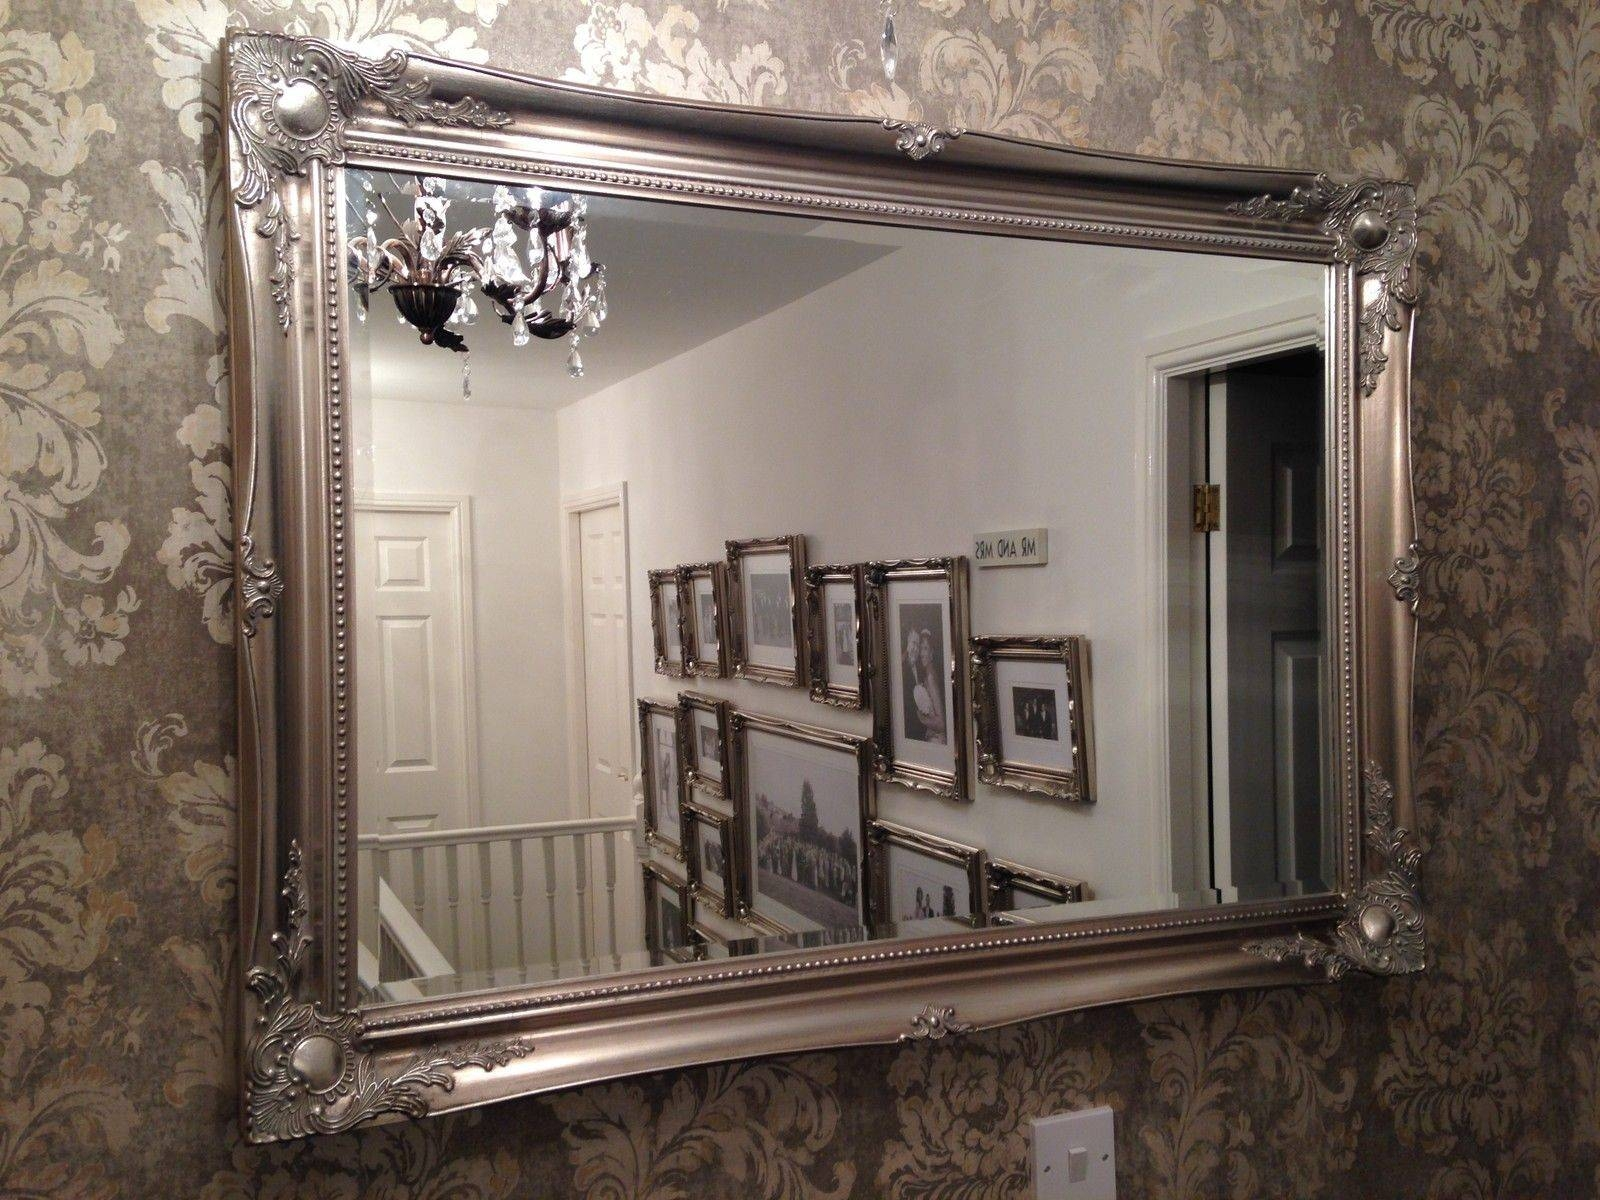 Silver Mirrors With Pewter Ornate Mirrors (View 12 of 15)